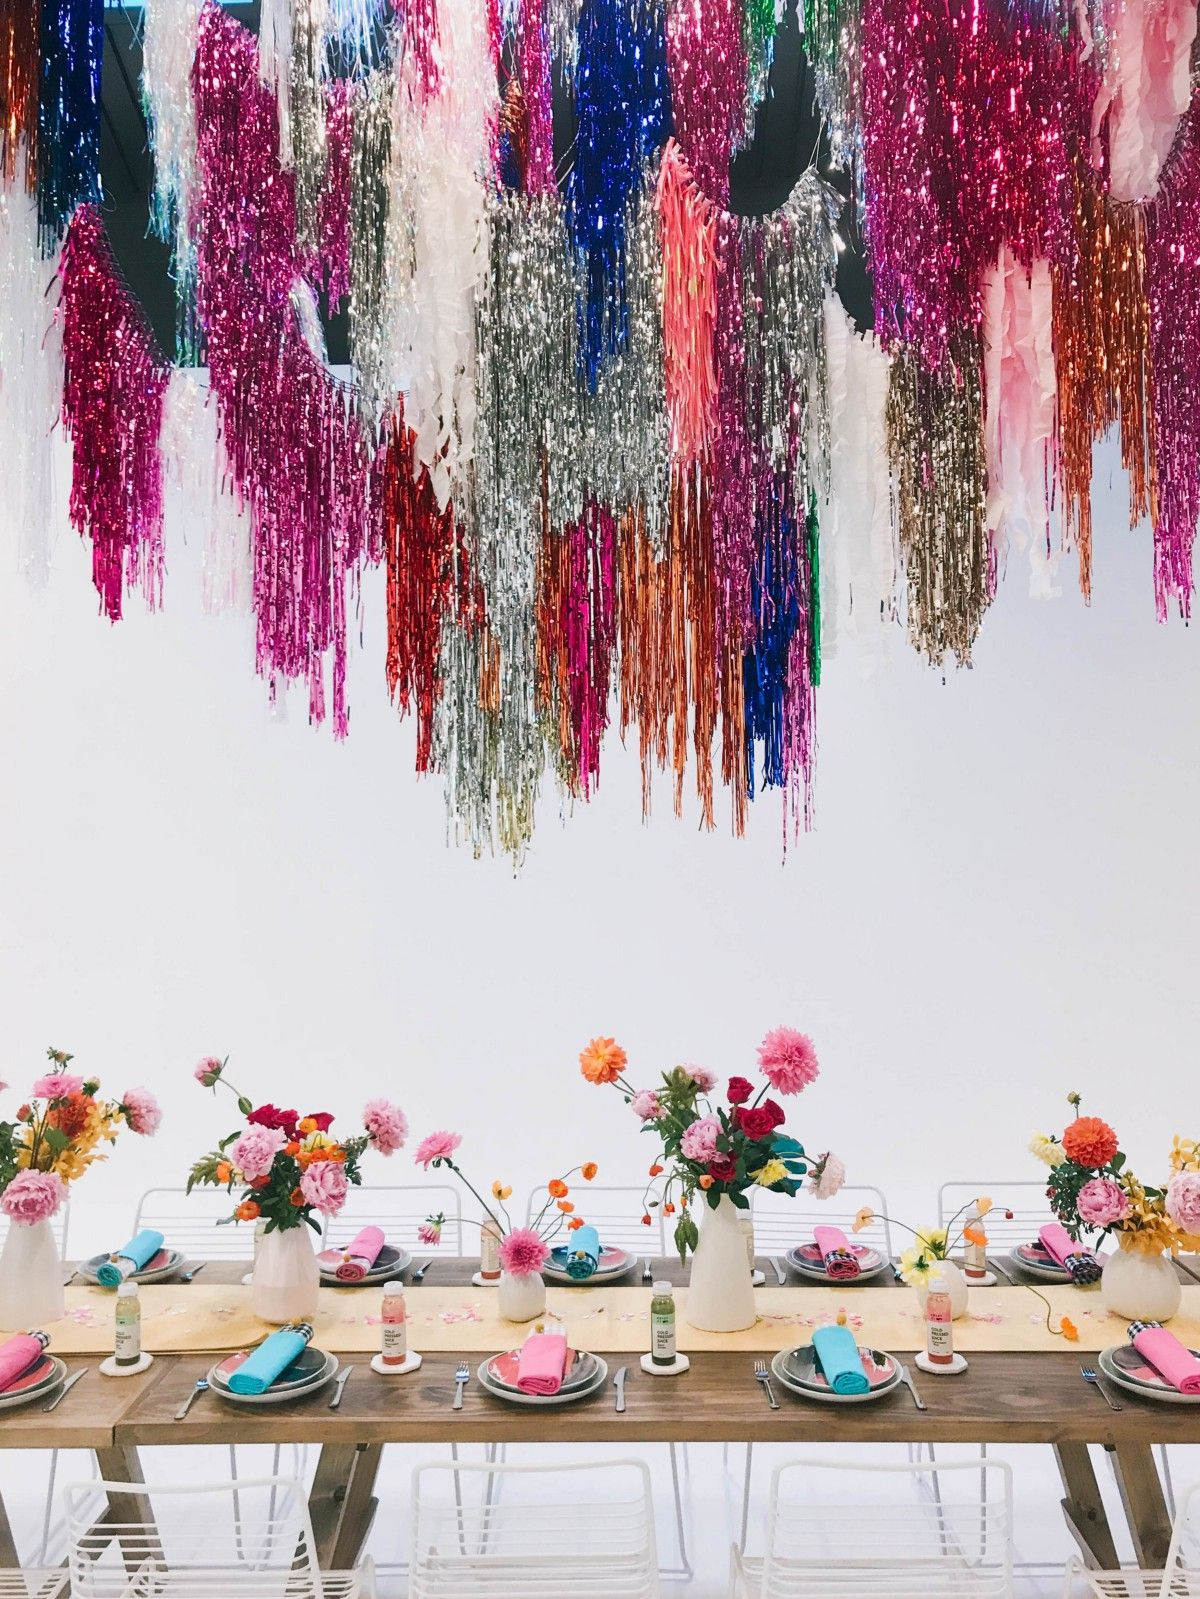 5 Easy Ideas For Chic Bridal Shower Decorations #bridalshowerdecorations